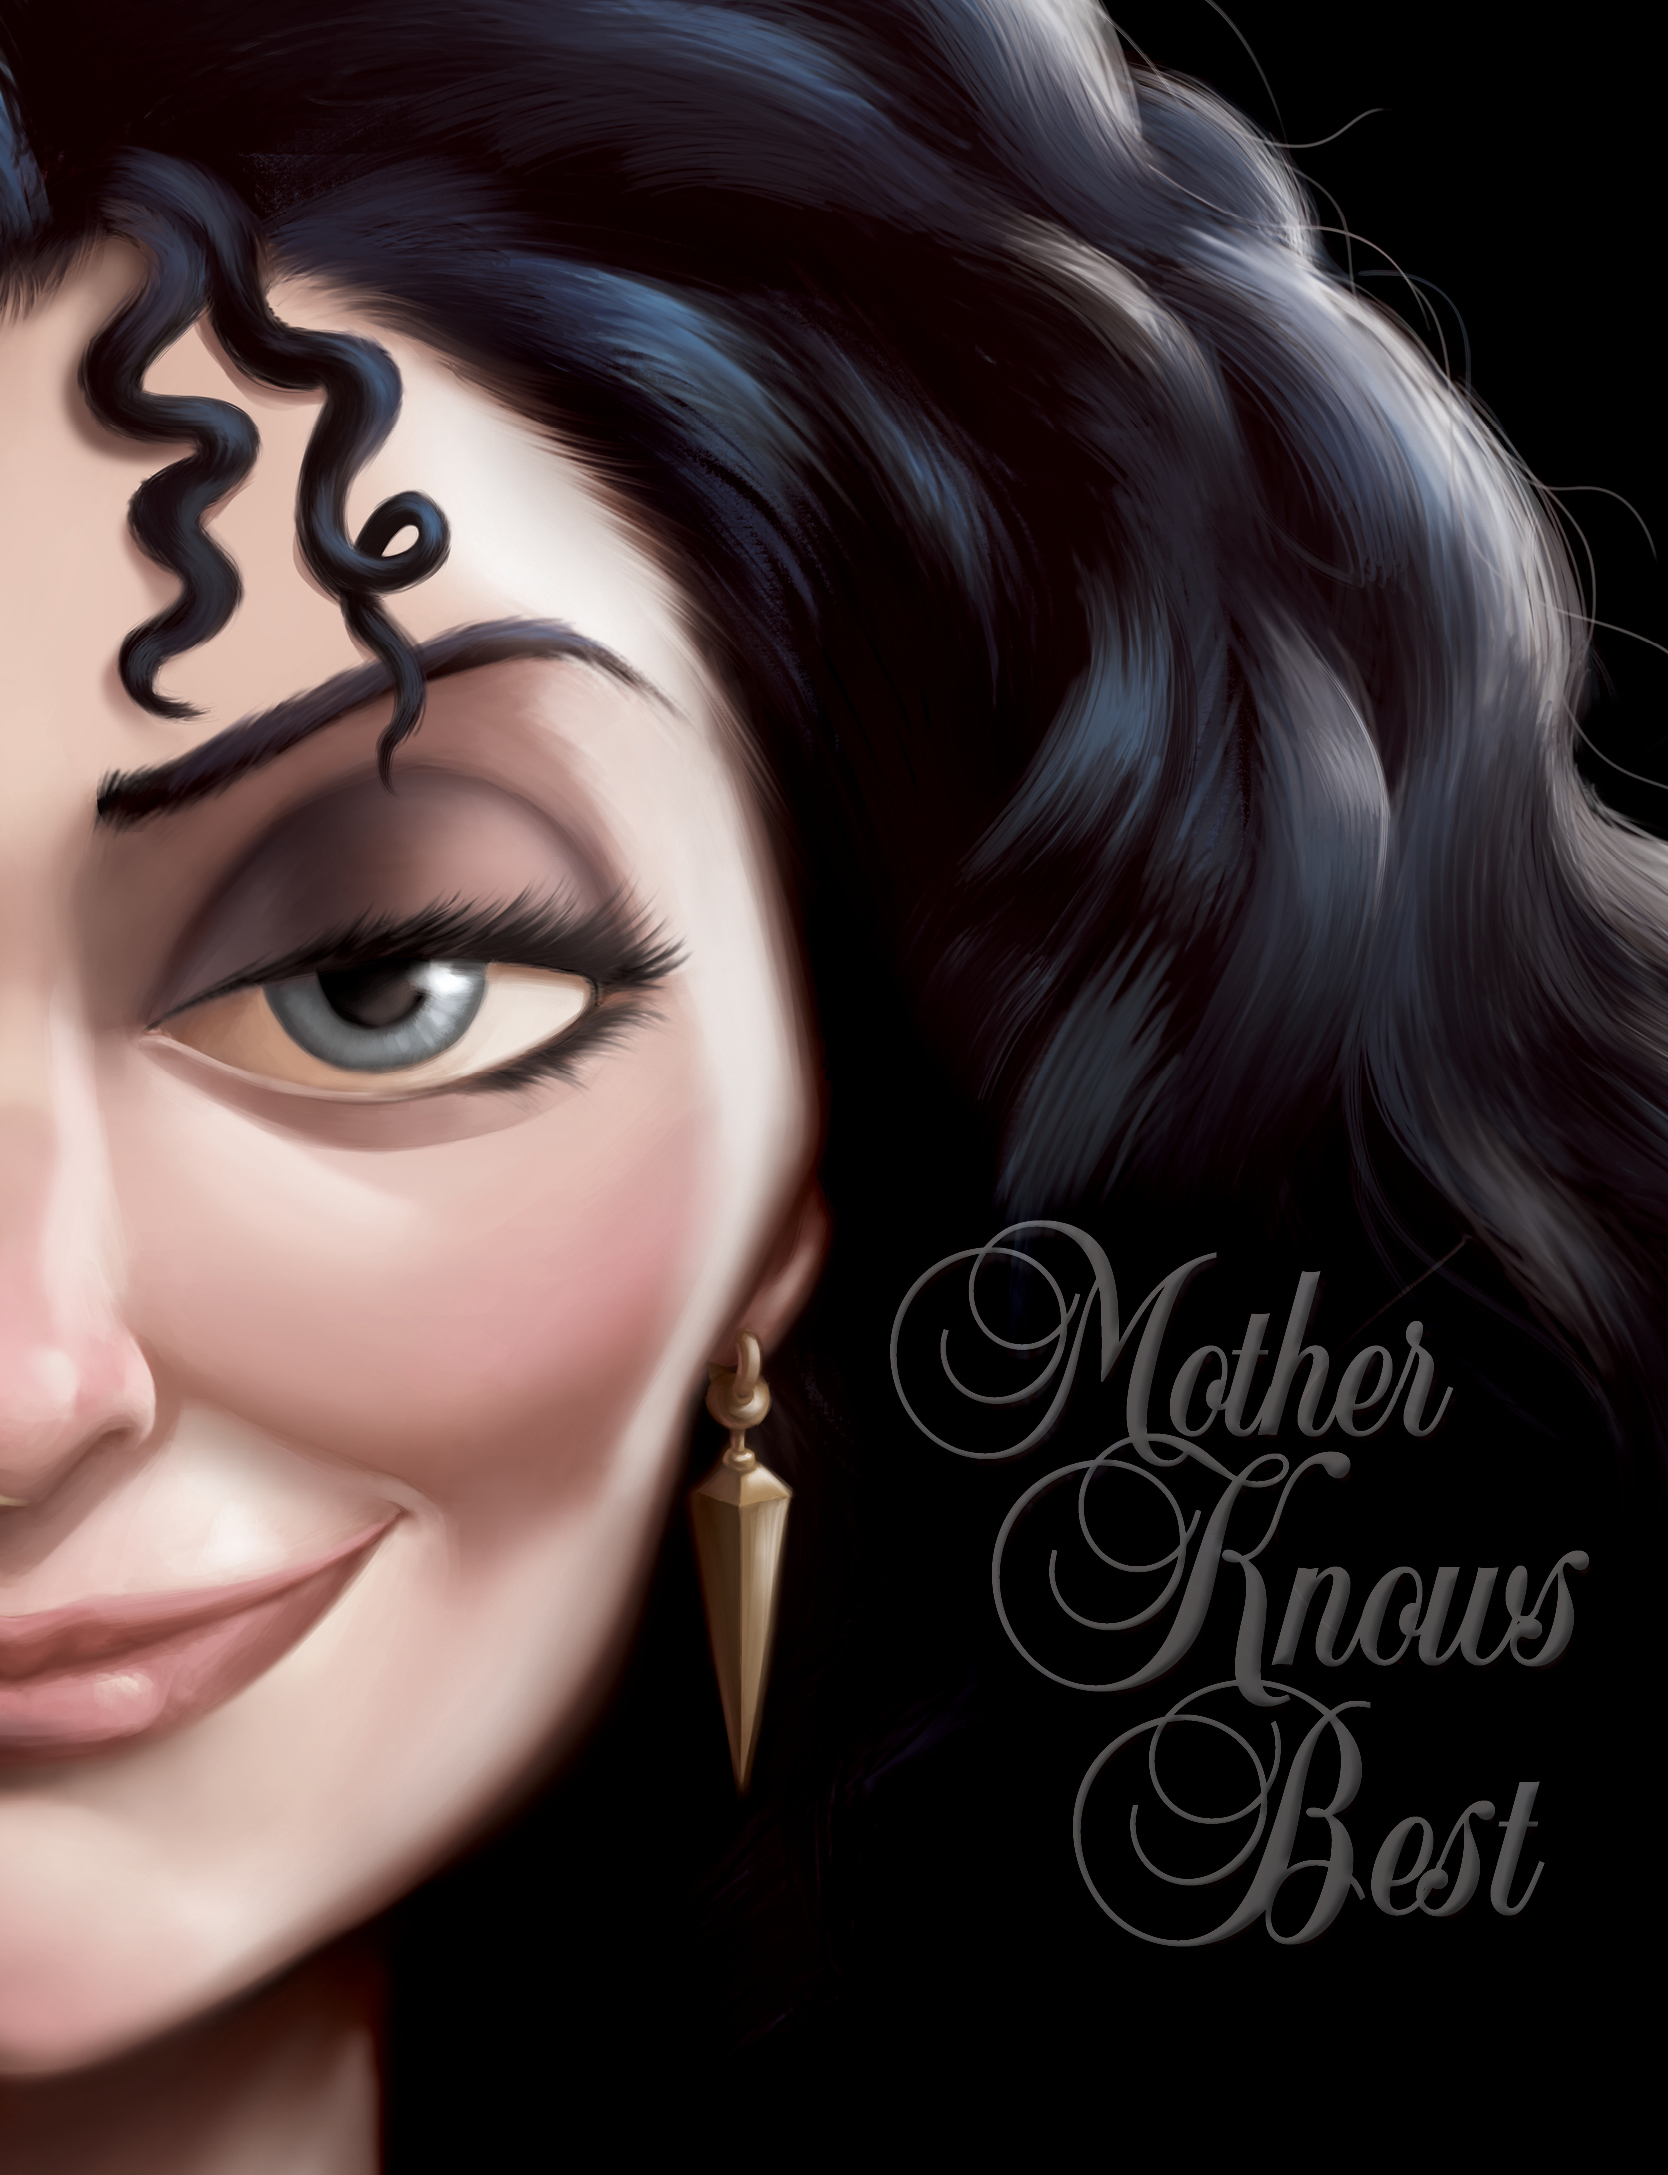 Mother Knows Best #MotherKnowsBest #DisneyVillainsBooks #books #disney #giveaway #ad